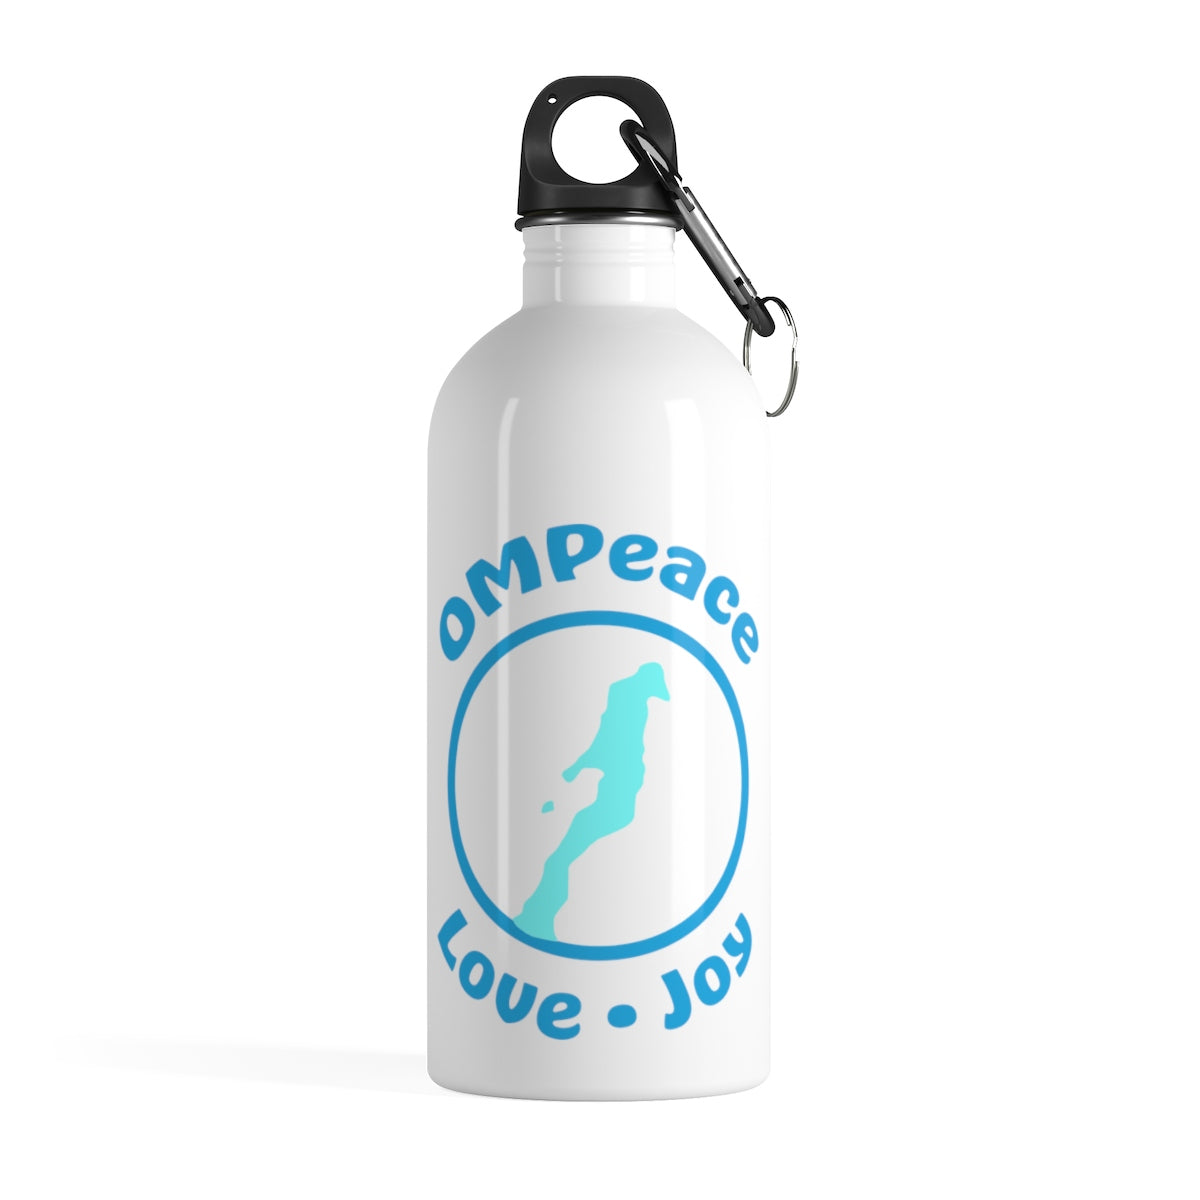 OMPeace White Stainless Steel Water Bottle